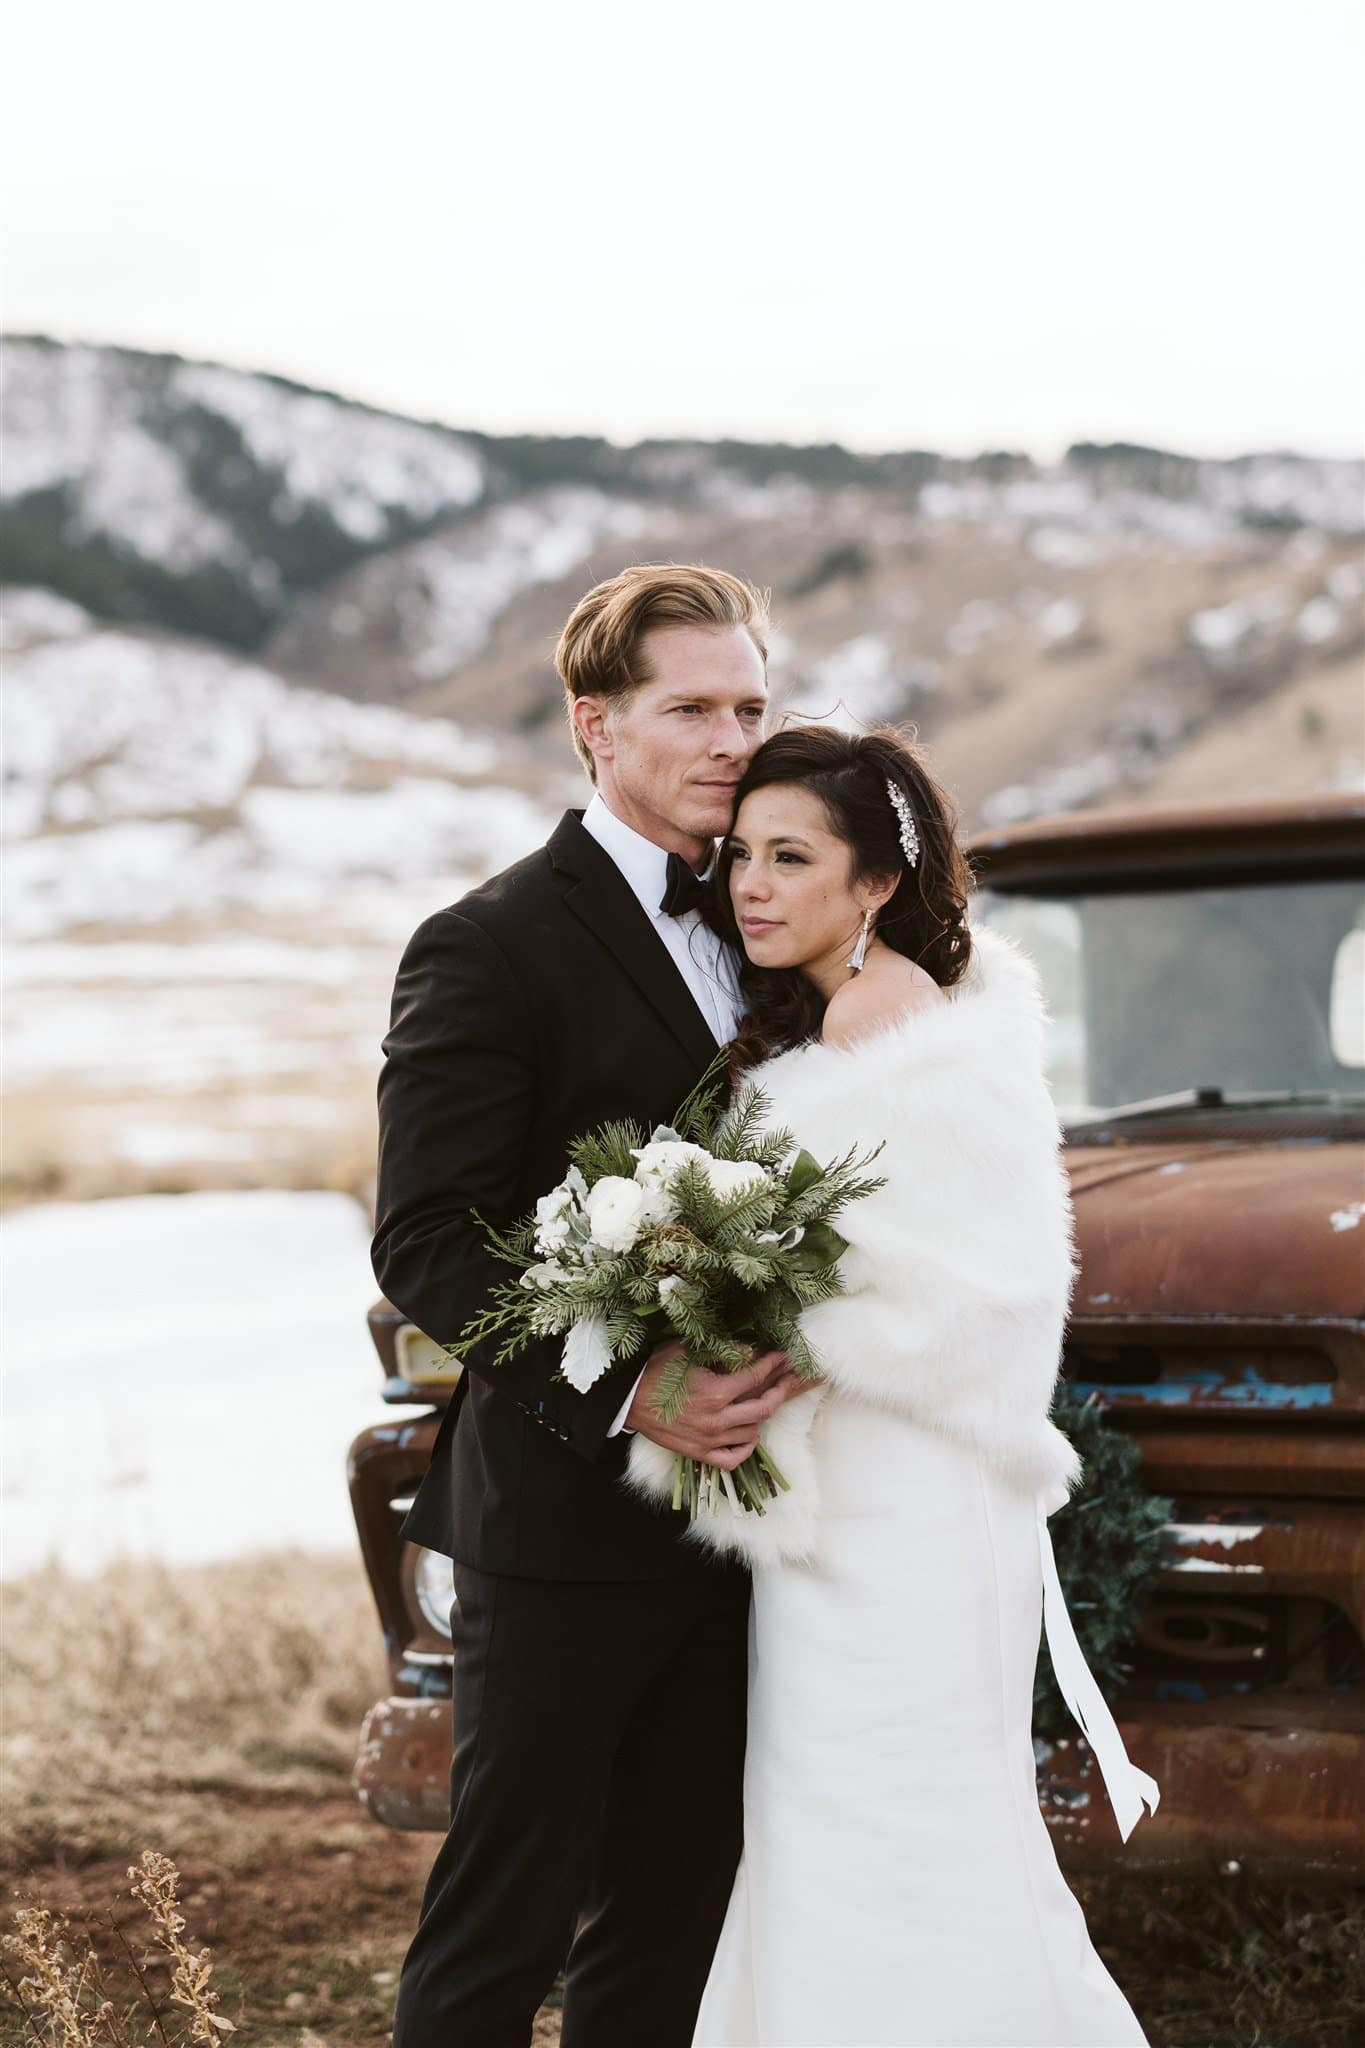 Bride and groom in front of rusty old truck